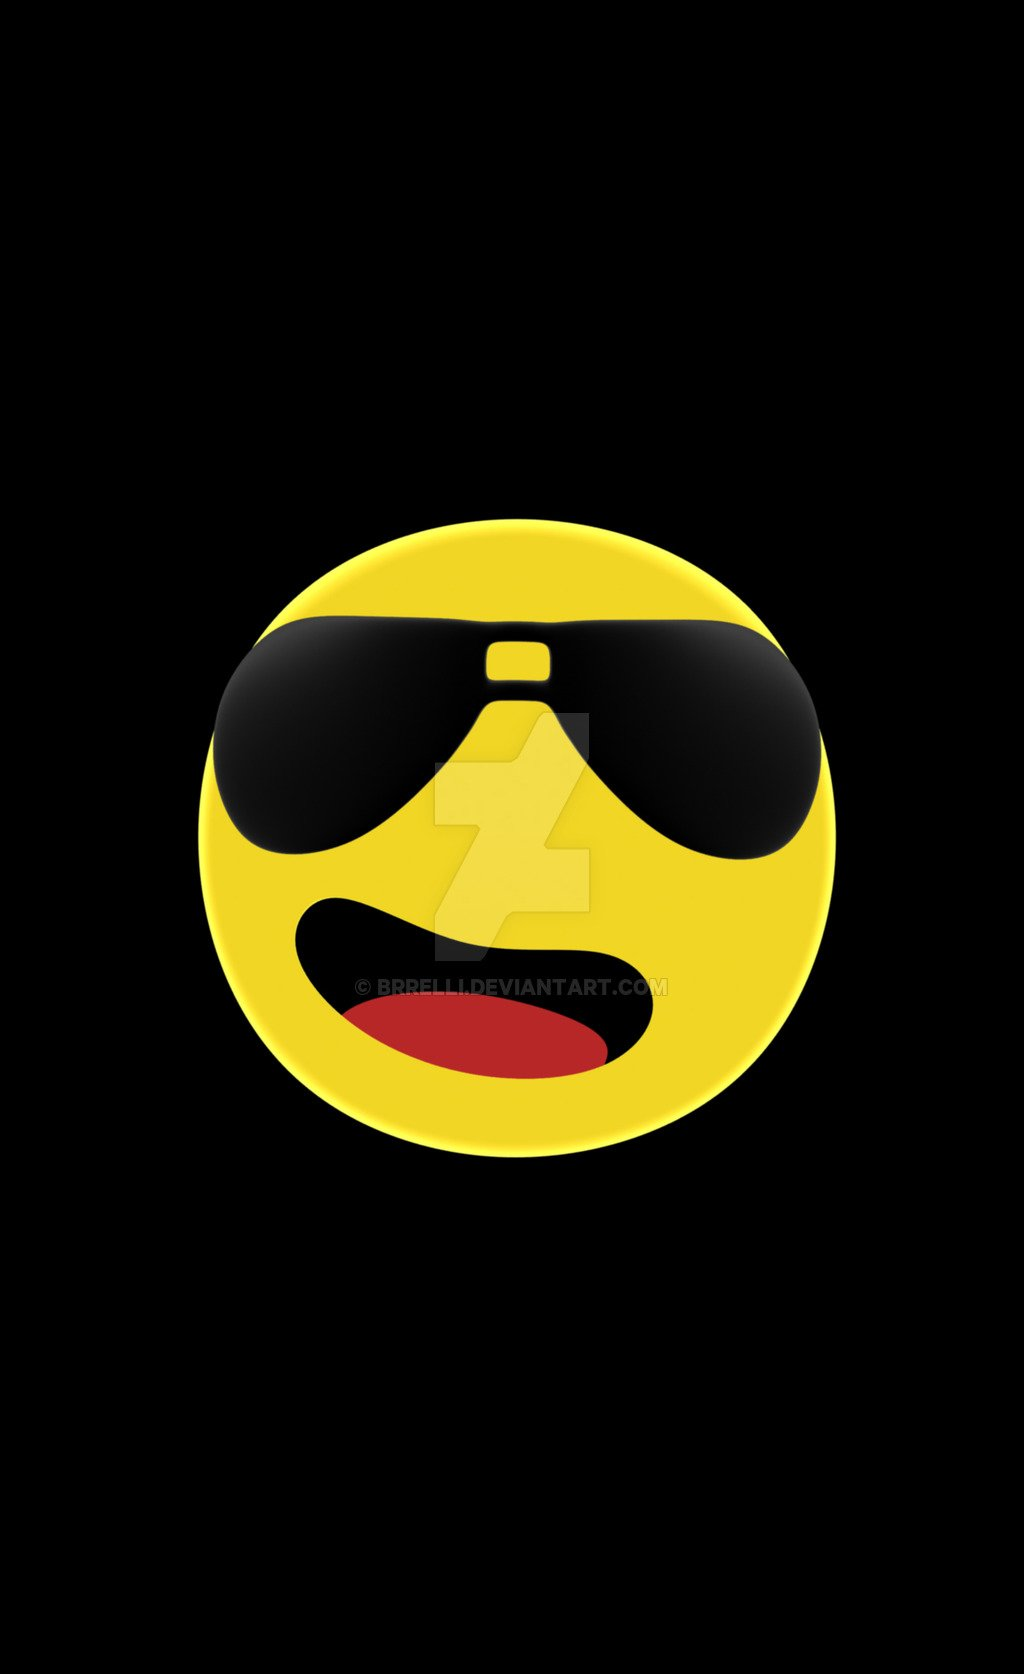 Free Cool Emoji Windows Phone 3D Model Wallpaper By